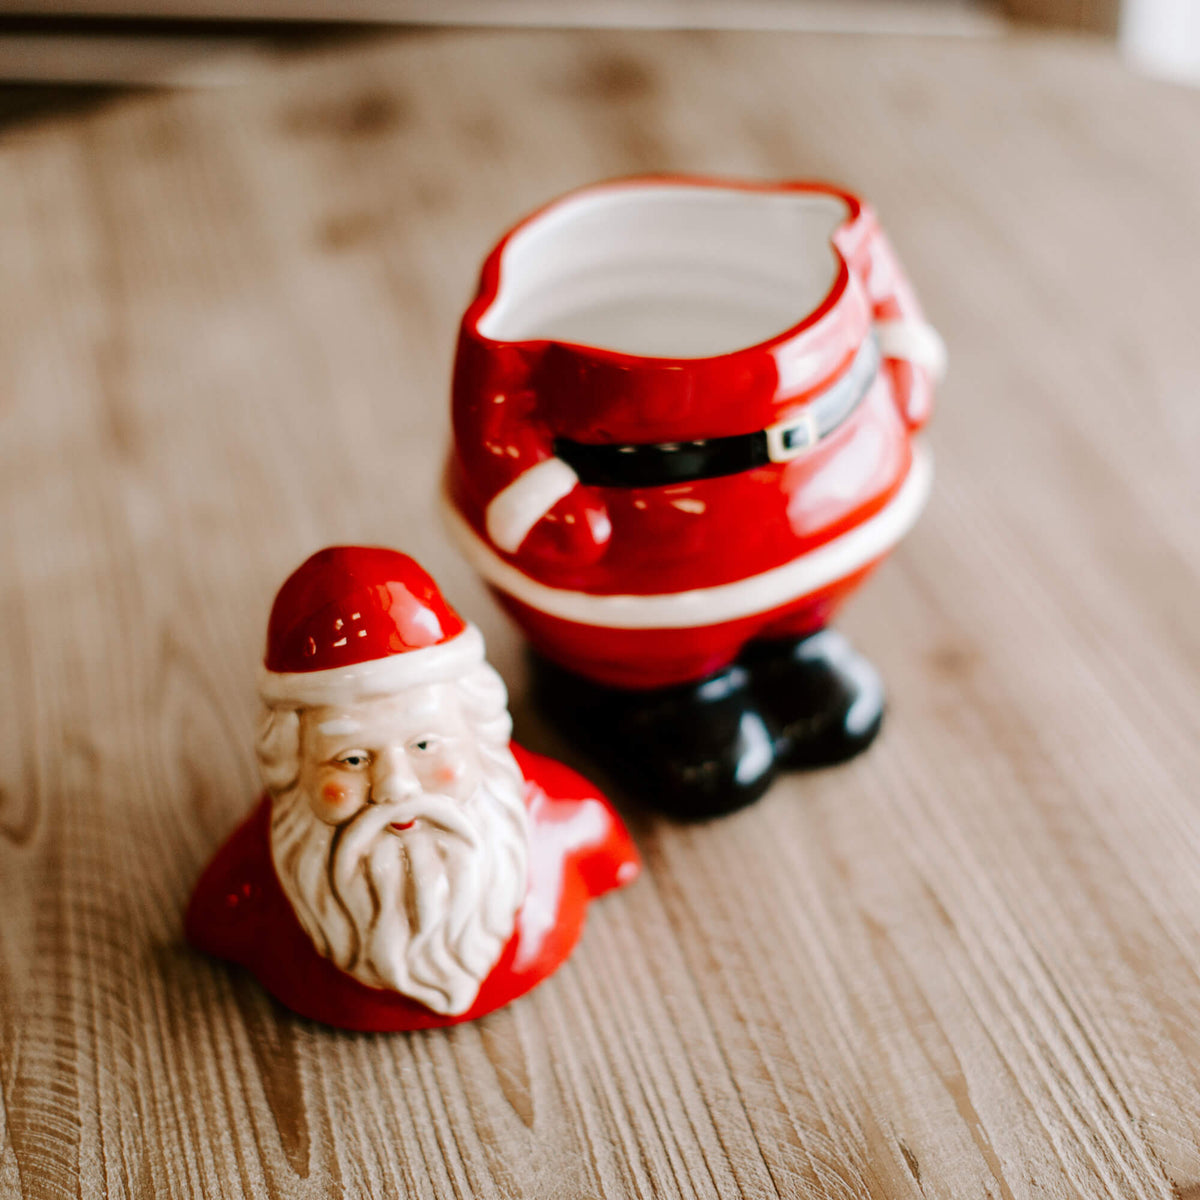 11 and half inch tall stoneware Santa Claus cookie jar in red, black and white, with lid removed resting beside it on the table